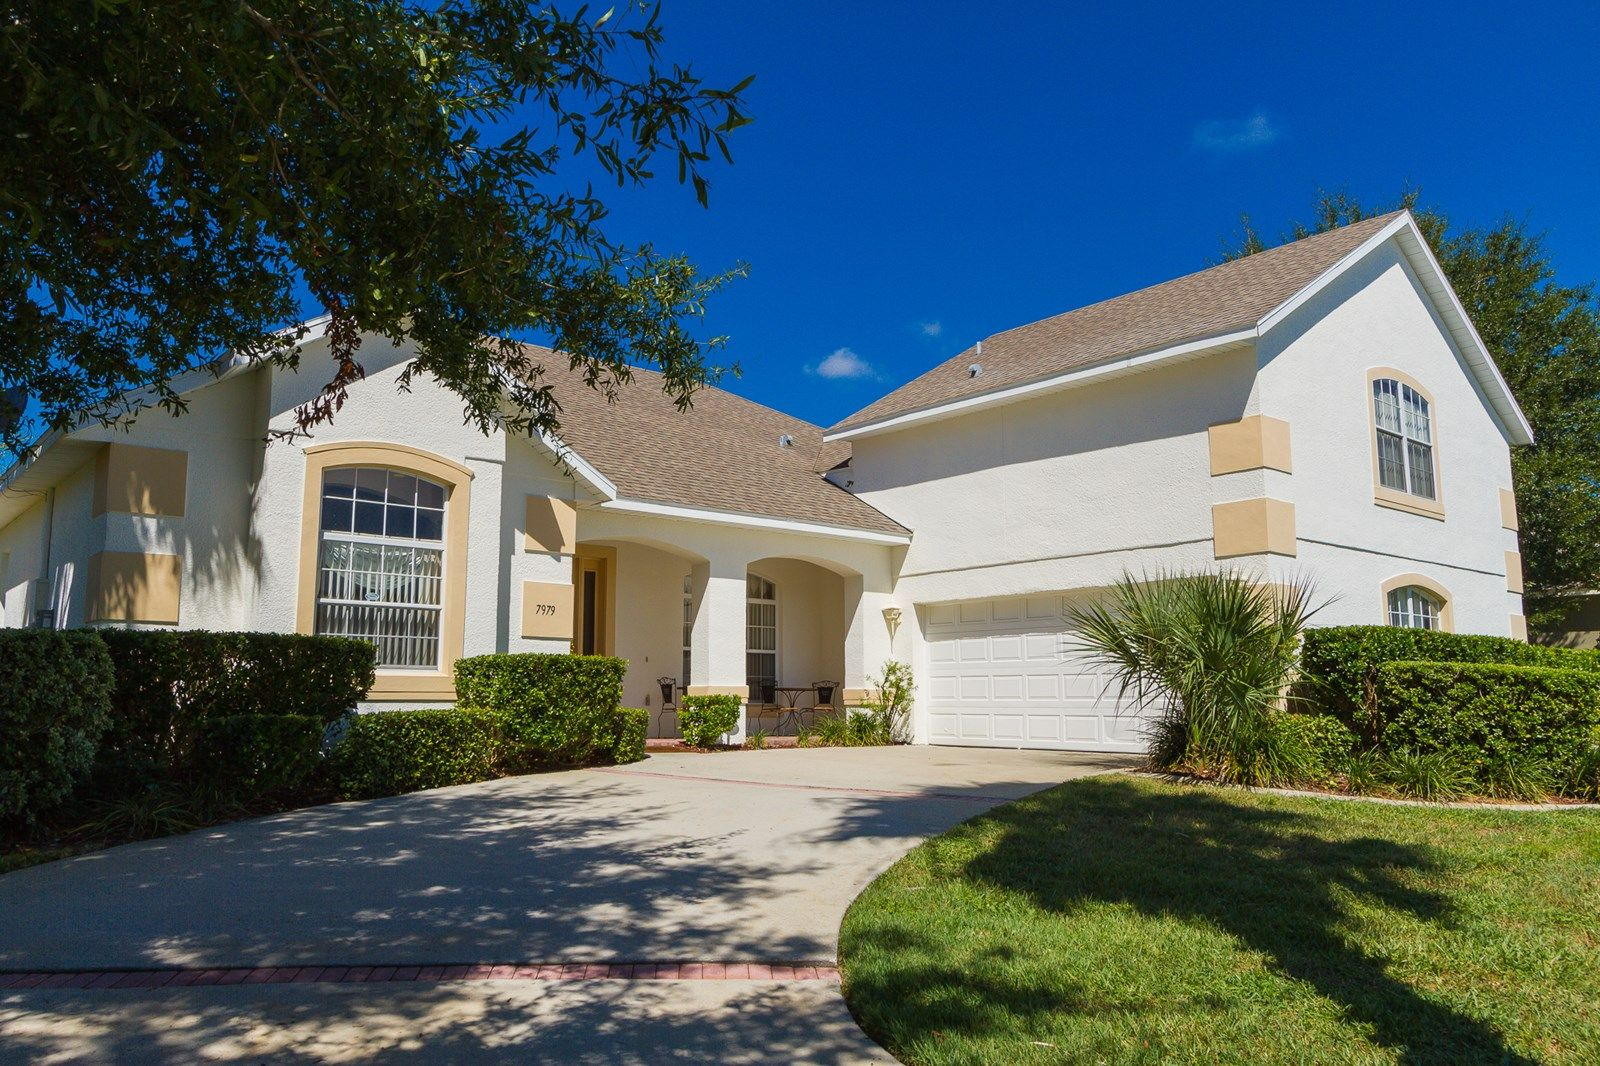 6ef6ef8d5c13be93aa07585848d31a15 - Homes For Sale Formosa Gardens Kissimmee